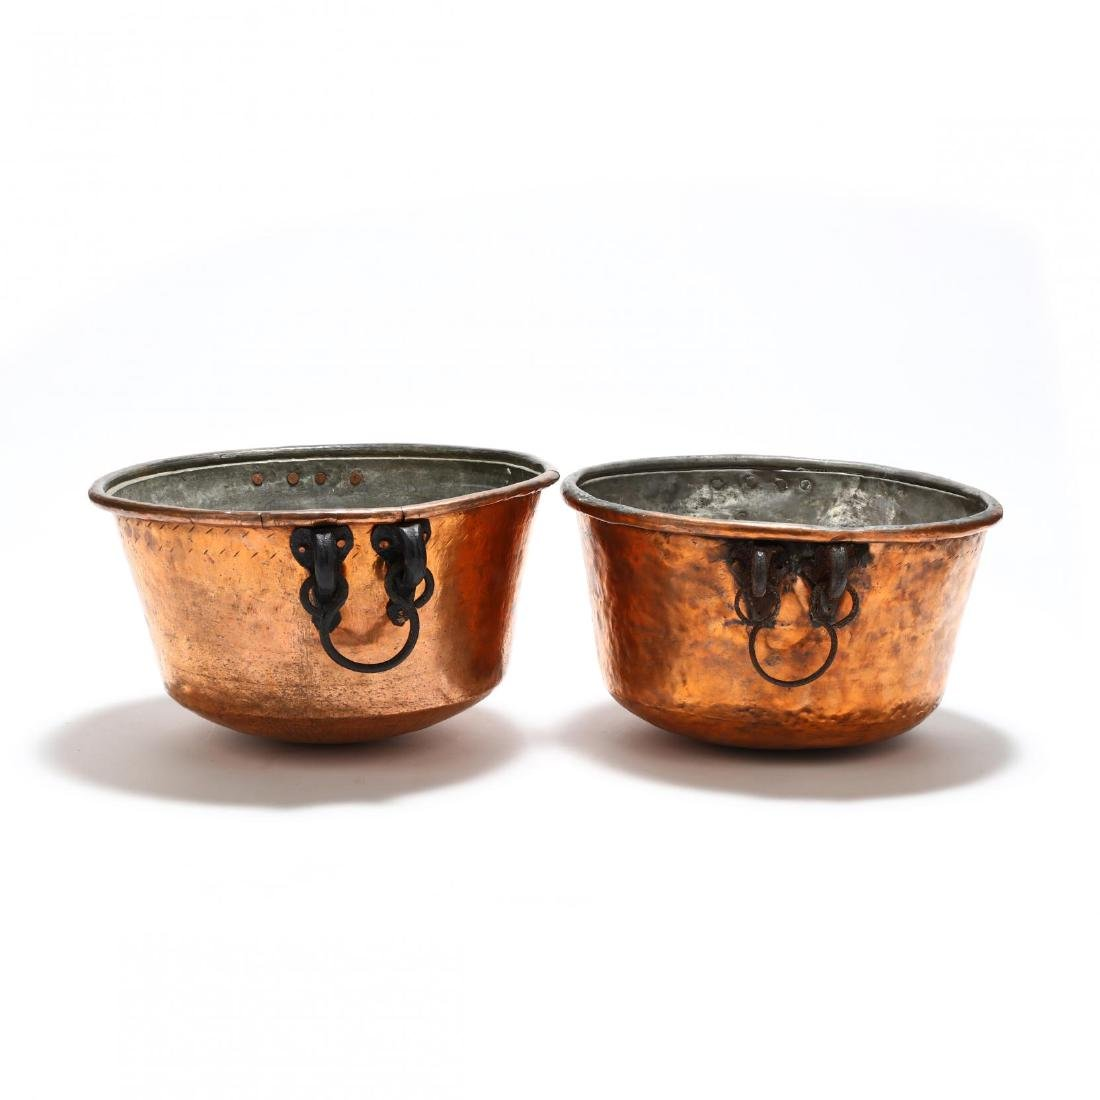 Two Large Hand-Hammered Copper Cauldrons - 4